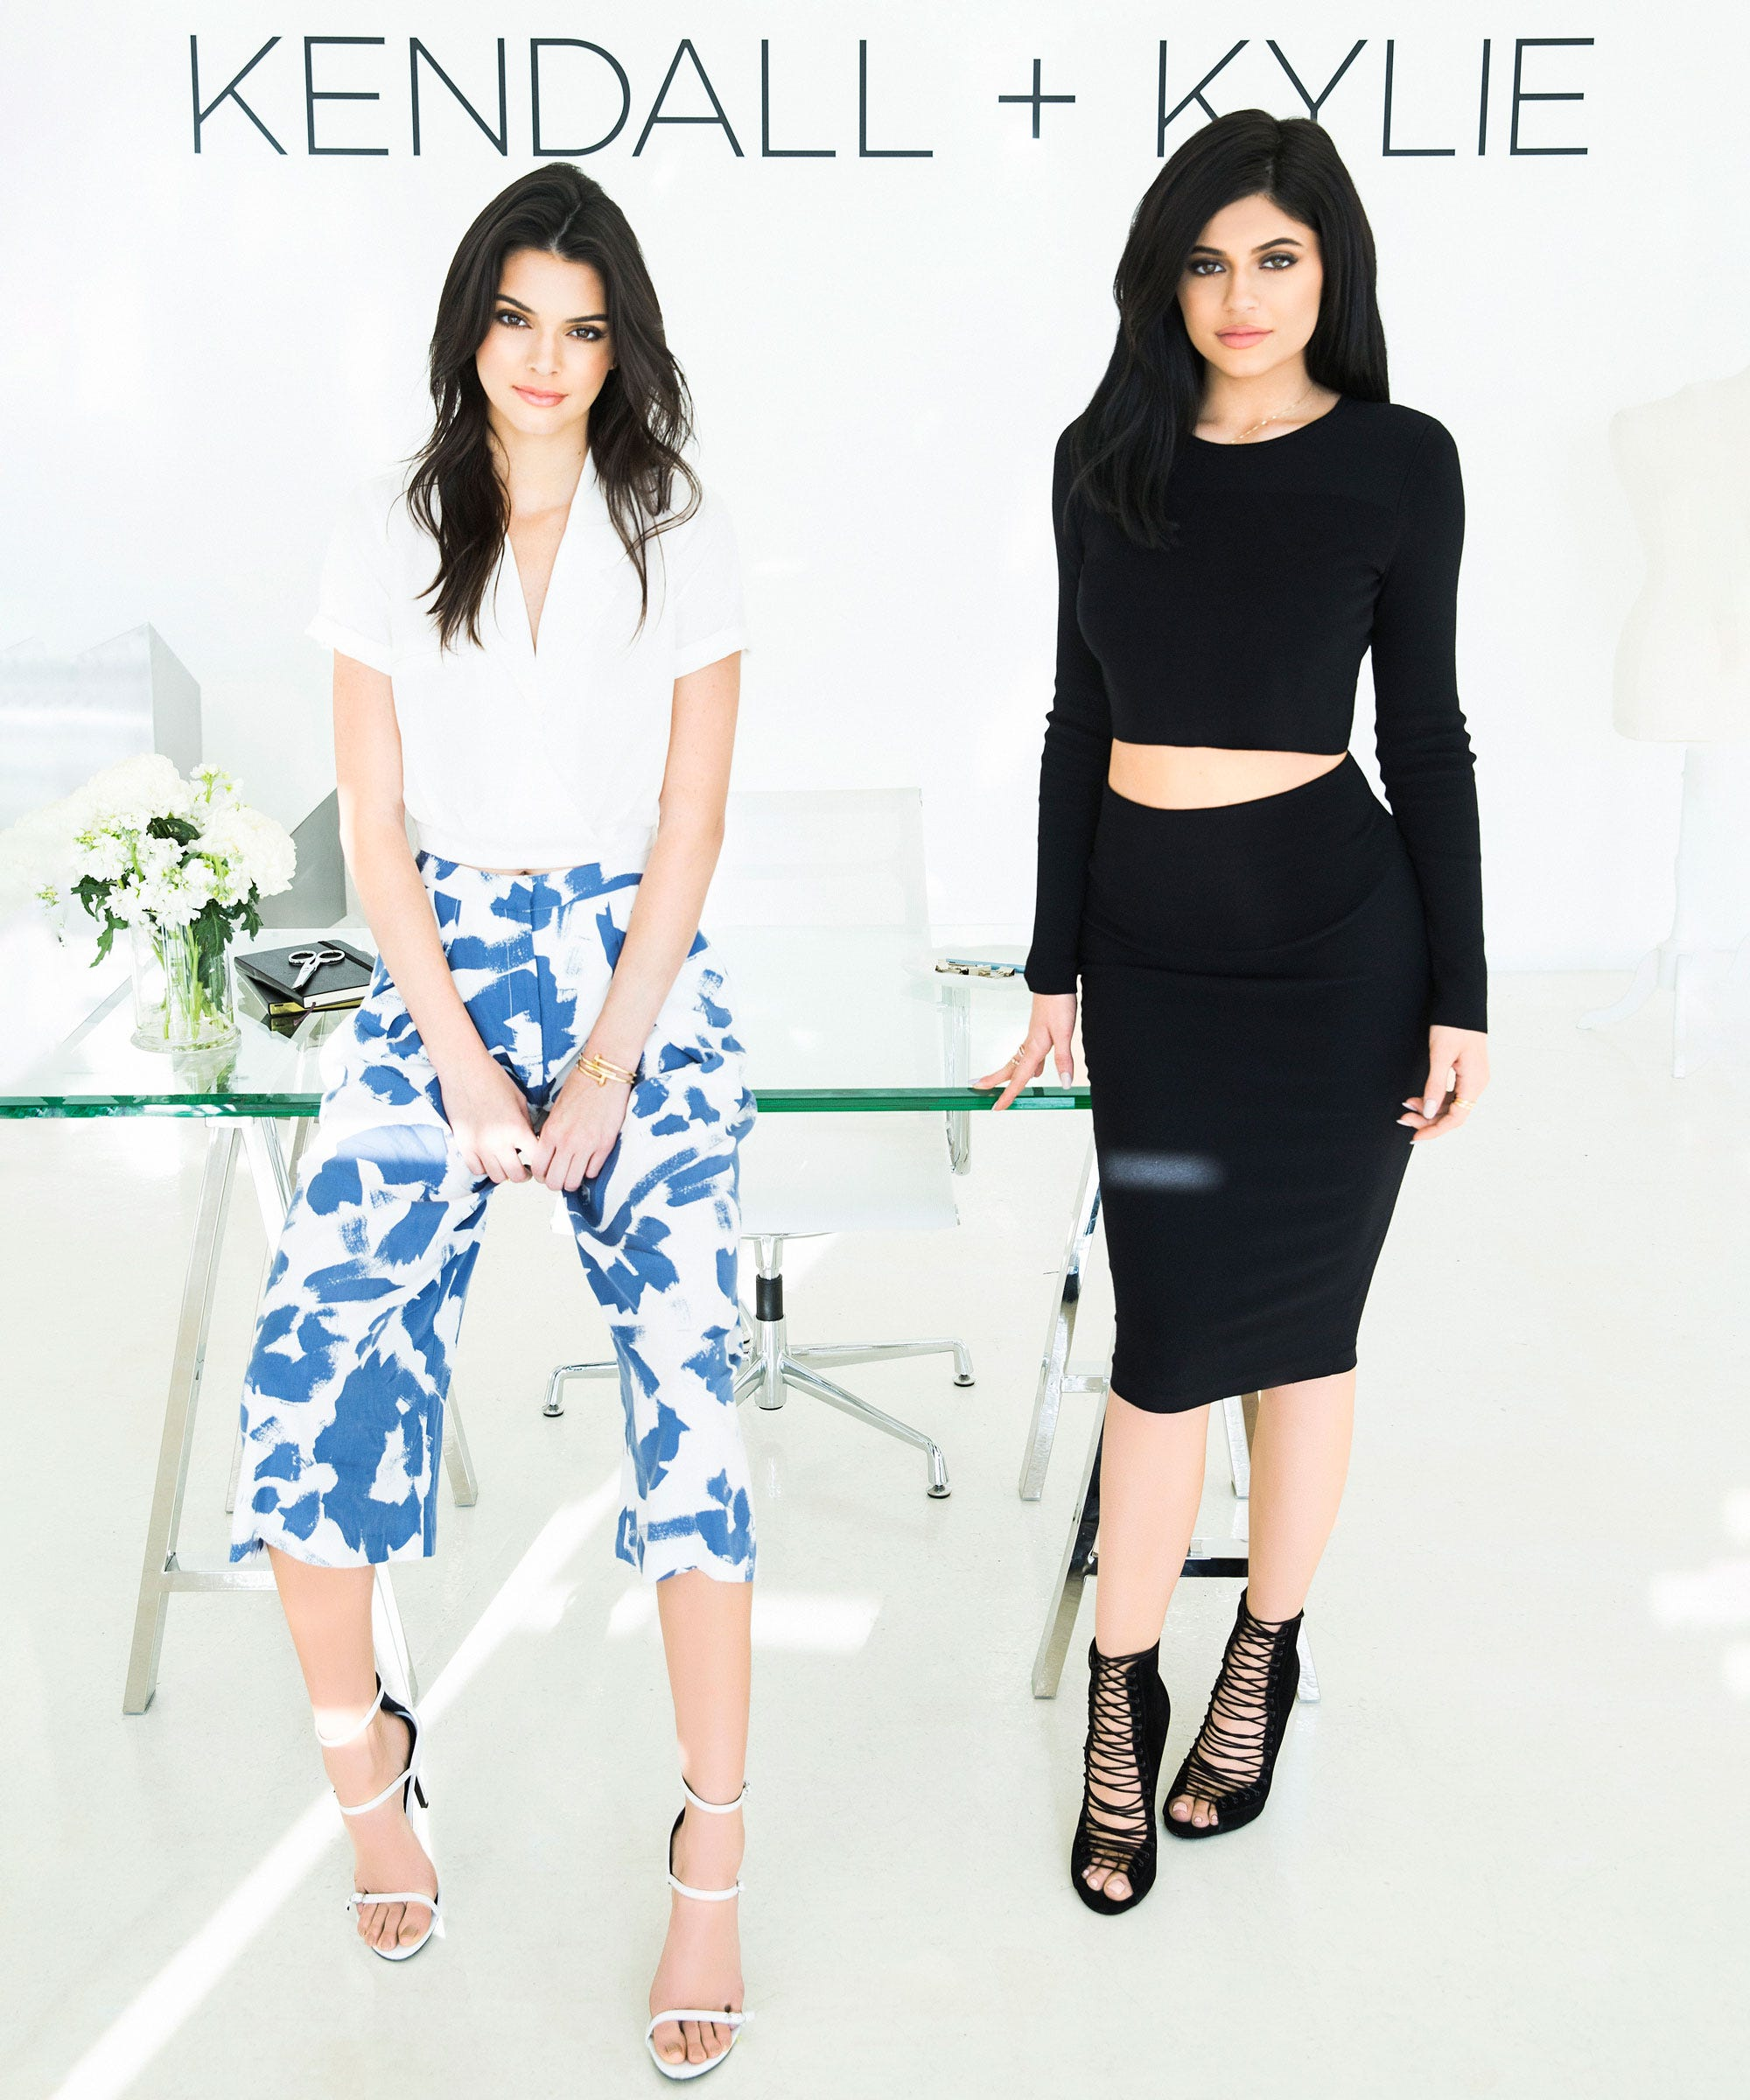 And Kylie Collection Kendall Jenner Images aXd15xw5